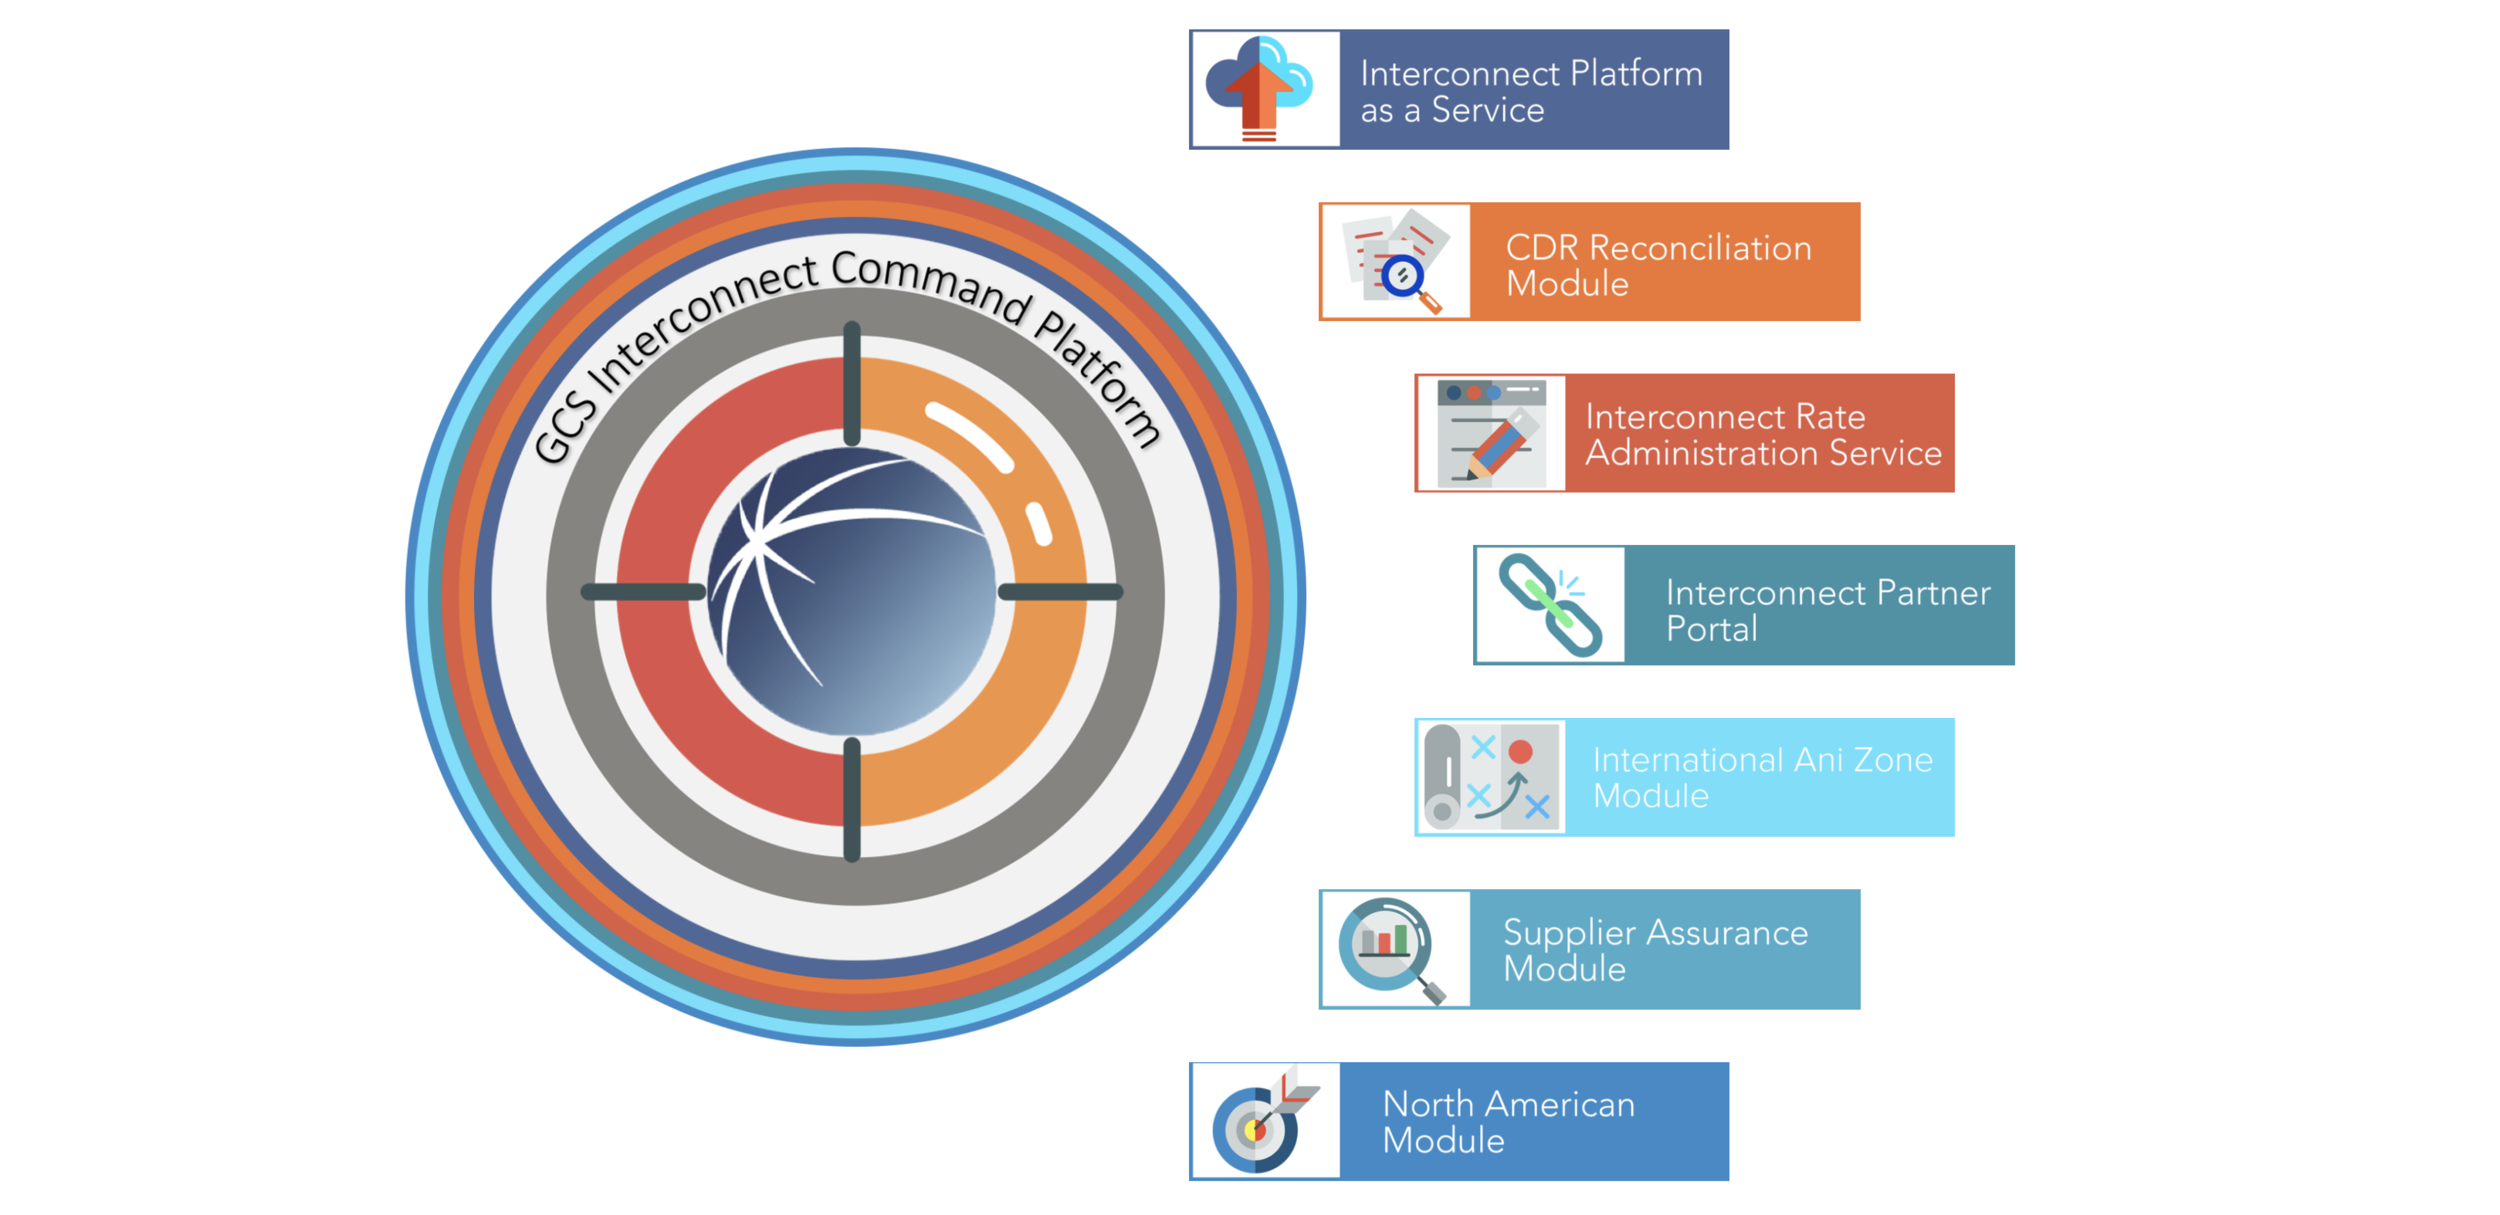 The GCS ICP Platform - An end-to-end platform designed to address nearly every interconnect voice related business process